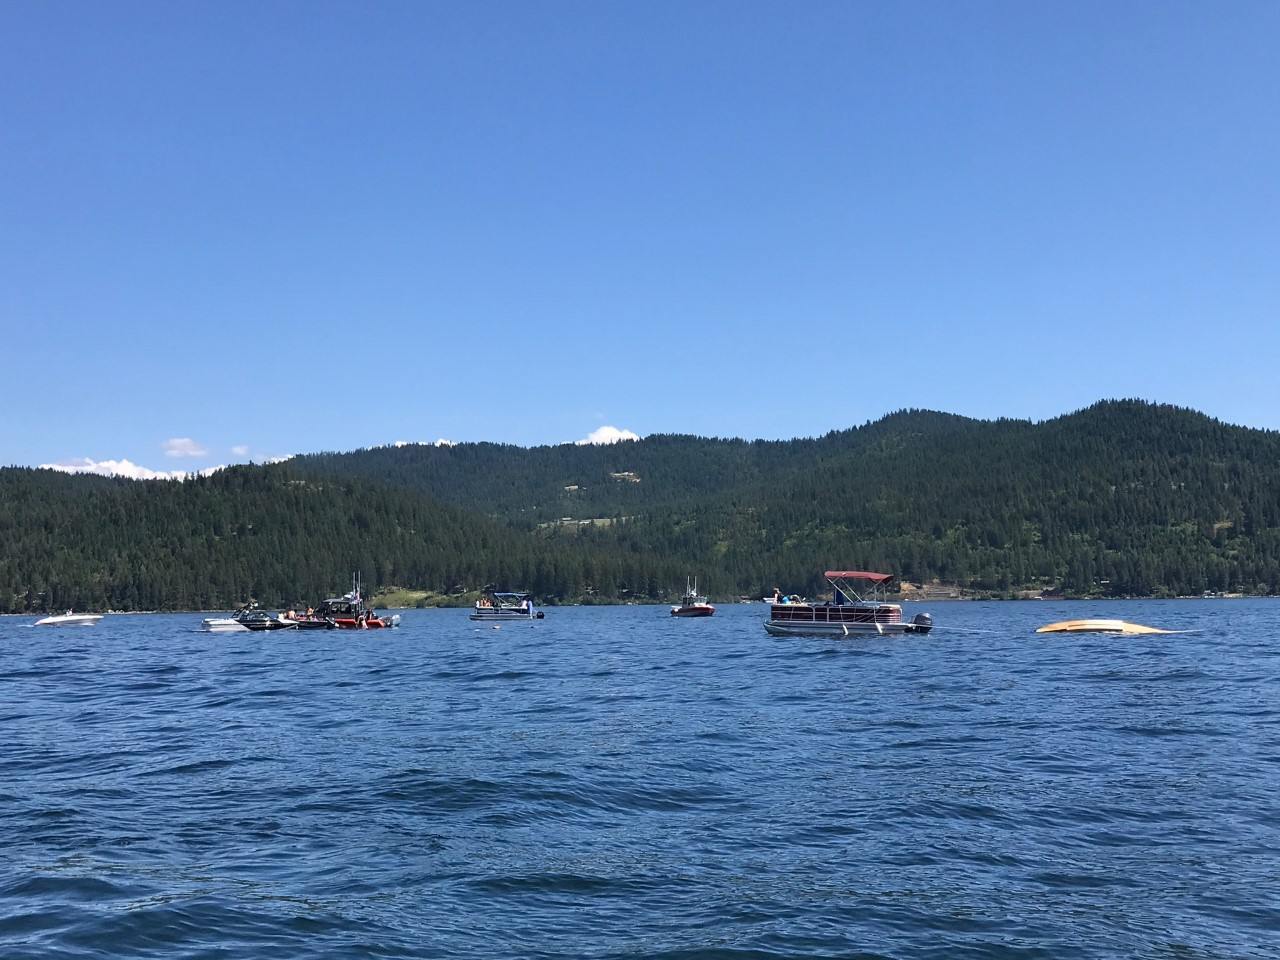 8 feared dead after 2 planes collide over Idaho lake